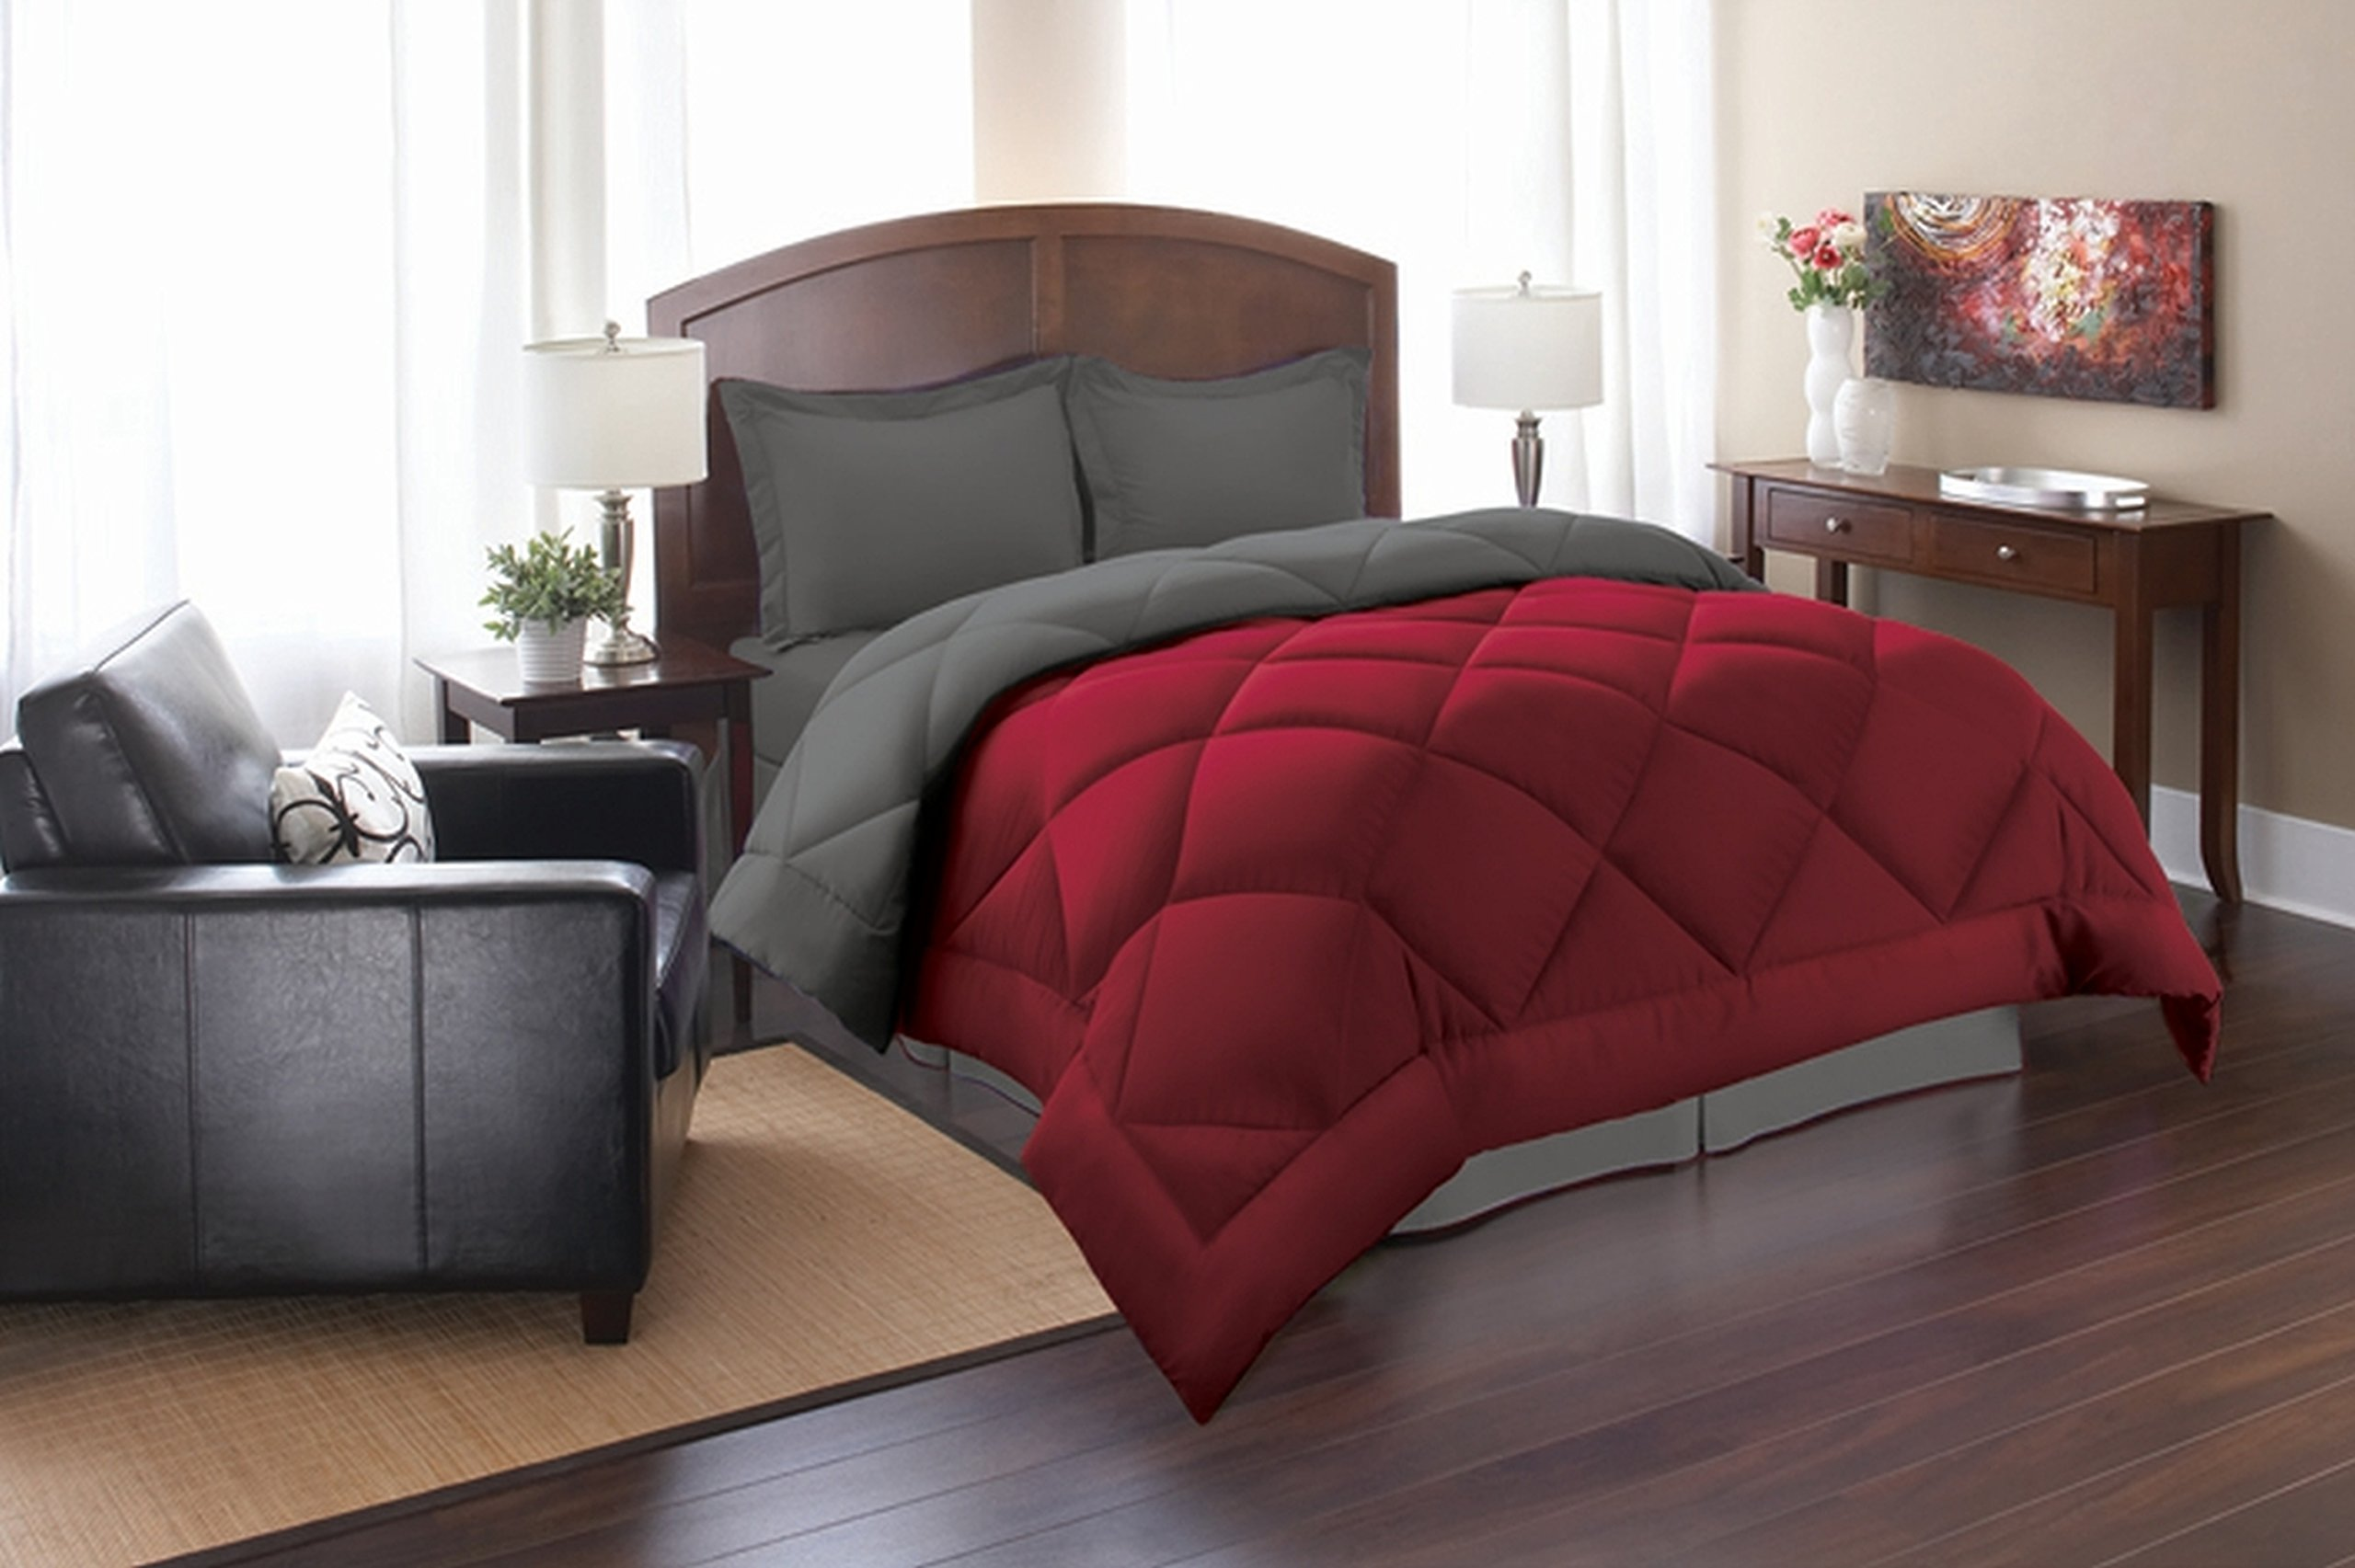 Super Soft Goose Down 3pc REVERSIBLE Alternative Comforter - All Sizes and Many Colors Available , QUEEN , Red/Gray